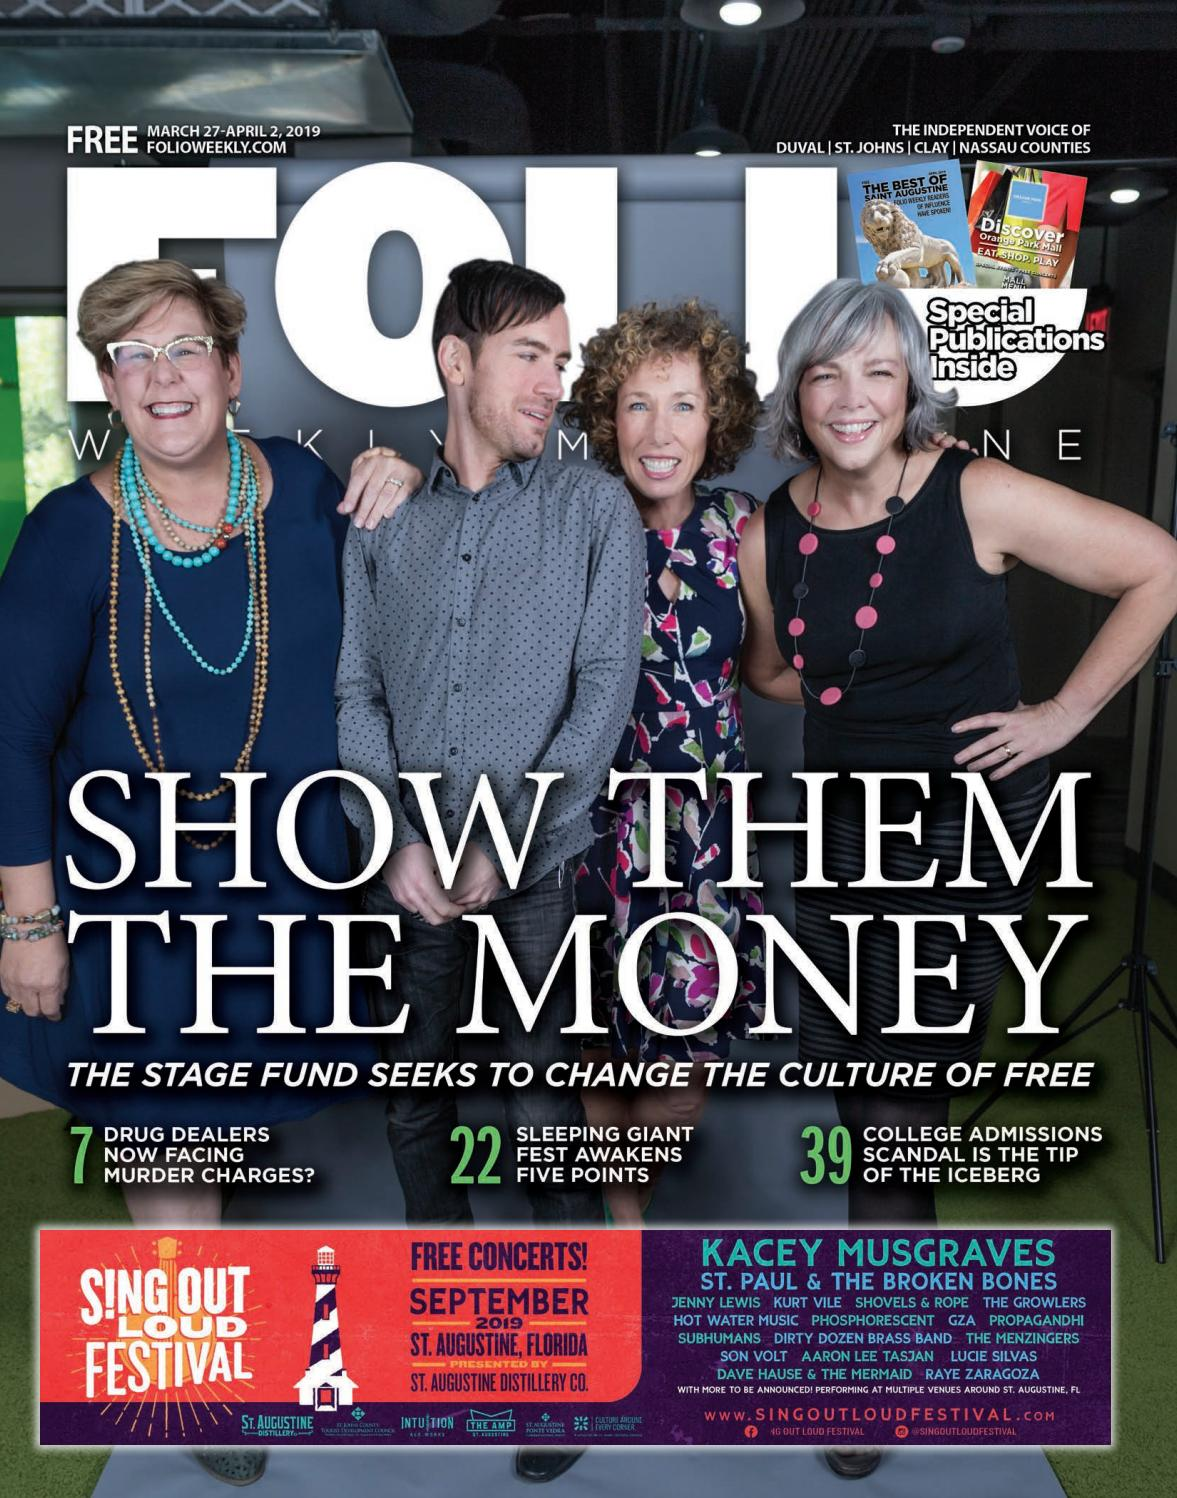 d5564a2b883 Show Them The Money by Folio Weekly - issuu